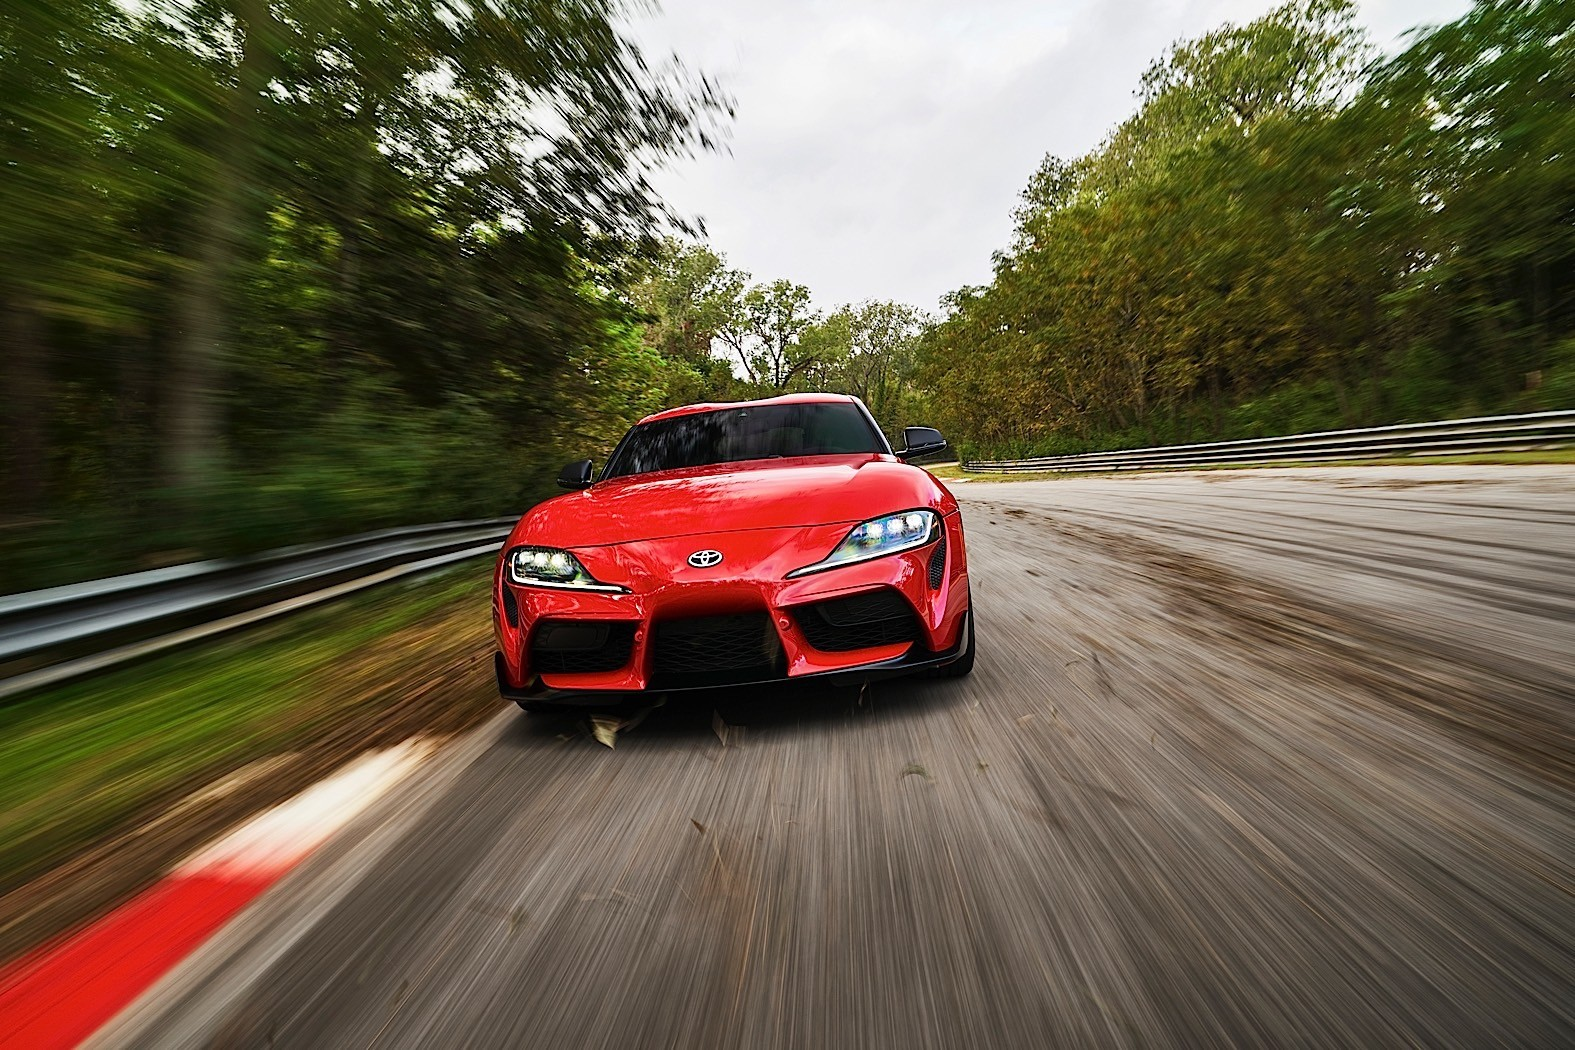 toyota supra trd racing toyota supra fuse box relocation 2020 toyota gr supra performance line trd concept looks ...